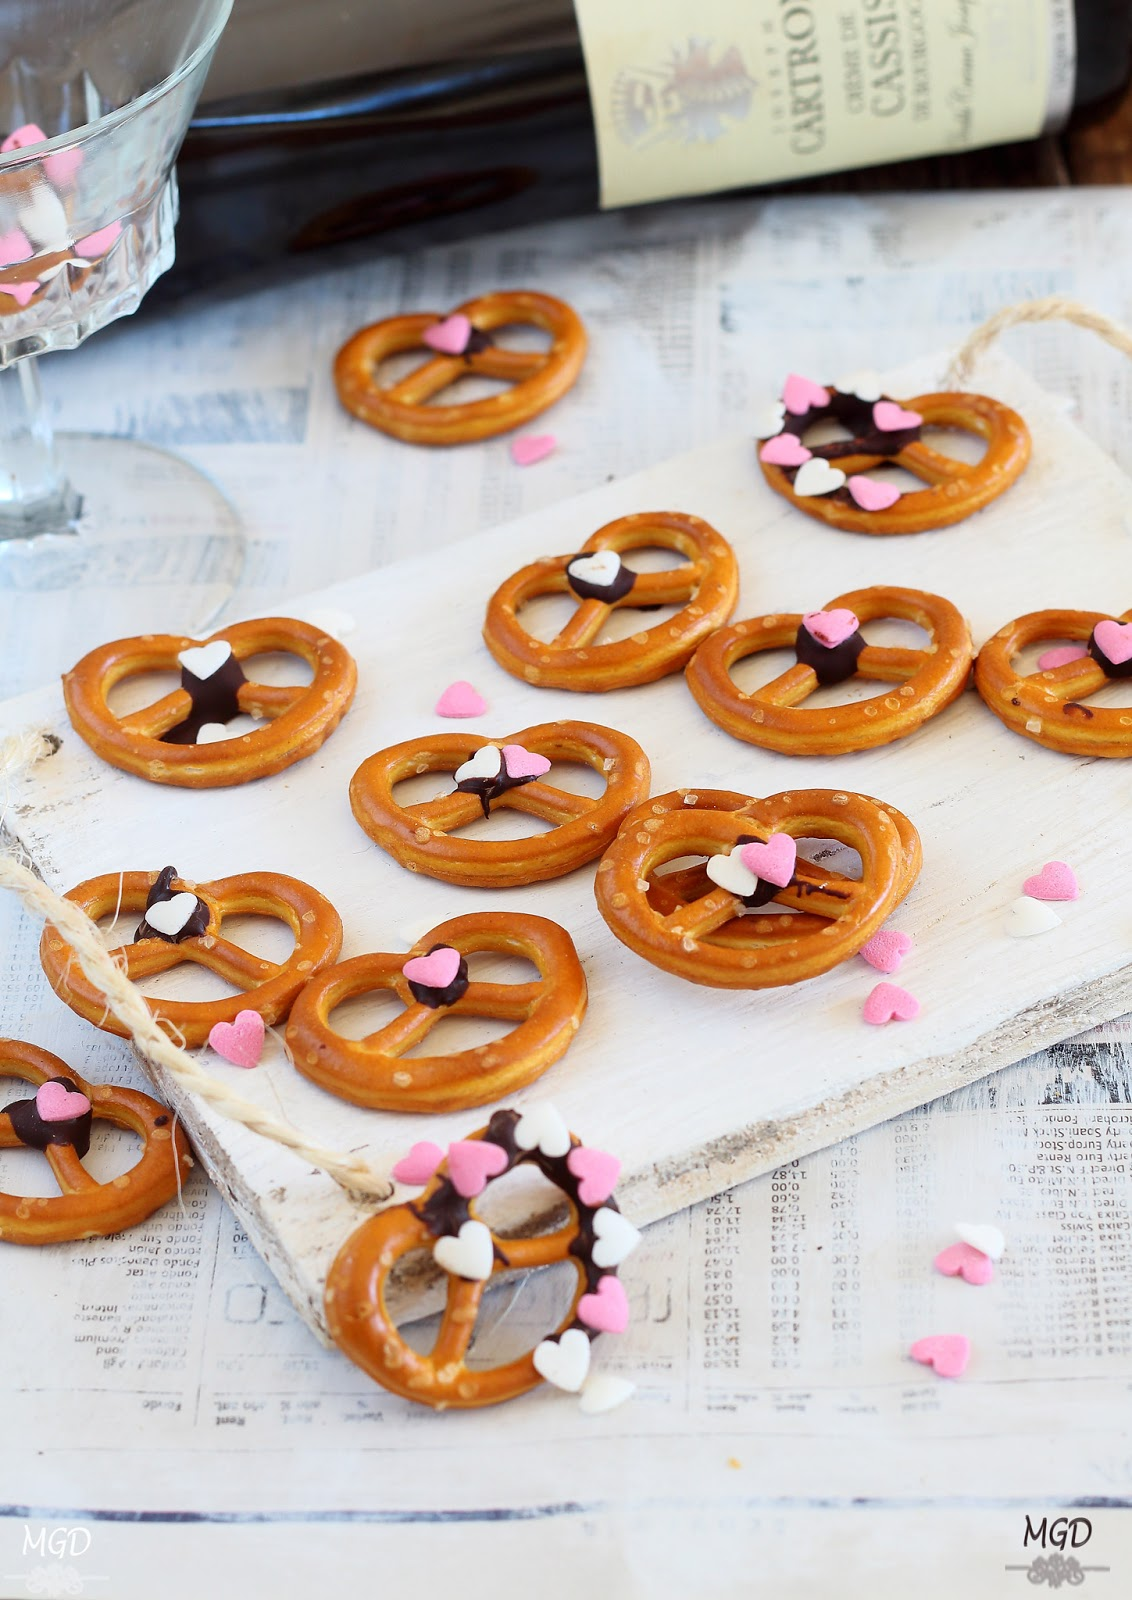 Galletas Pretzel con chocolate san valentin